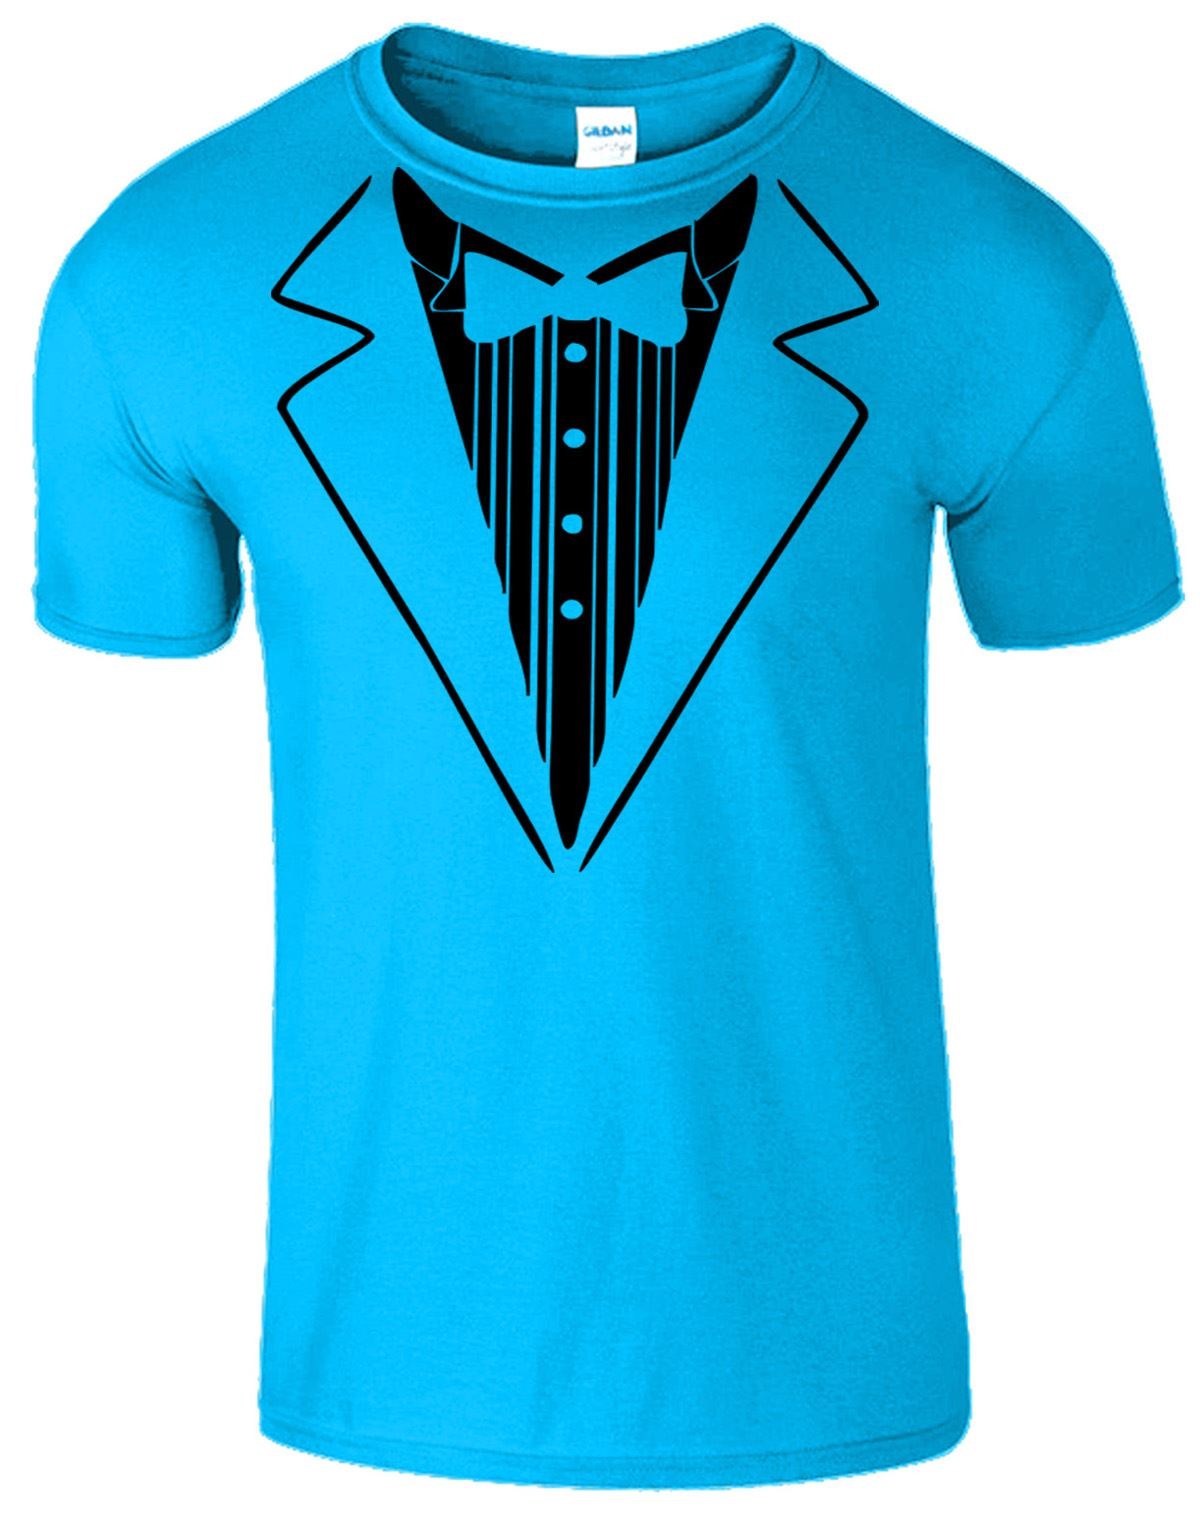 Tuxedo Suit Bow Tie Kids Funny Joke fancy Dress T SHIRT WEDDING STAG ...